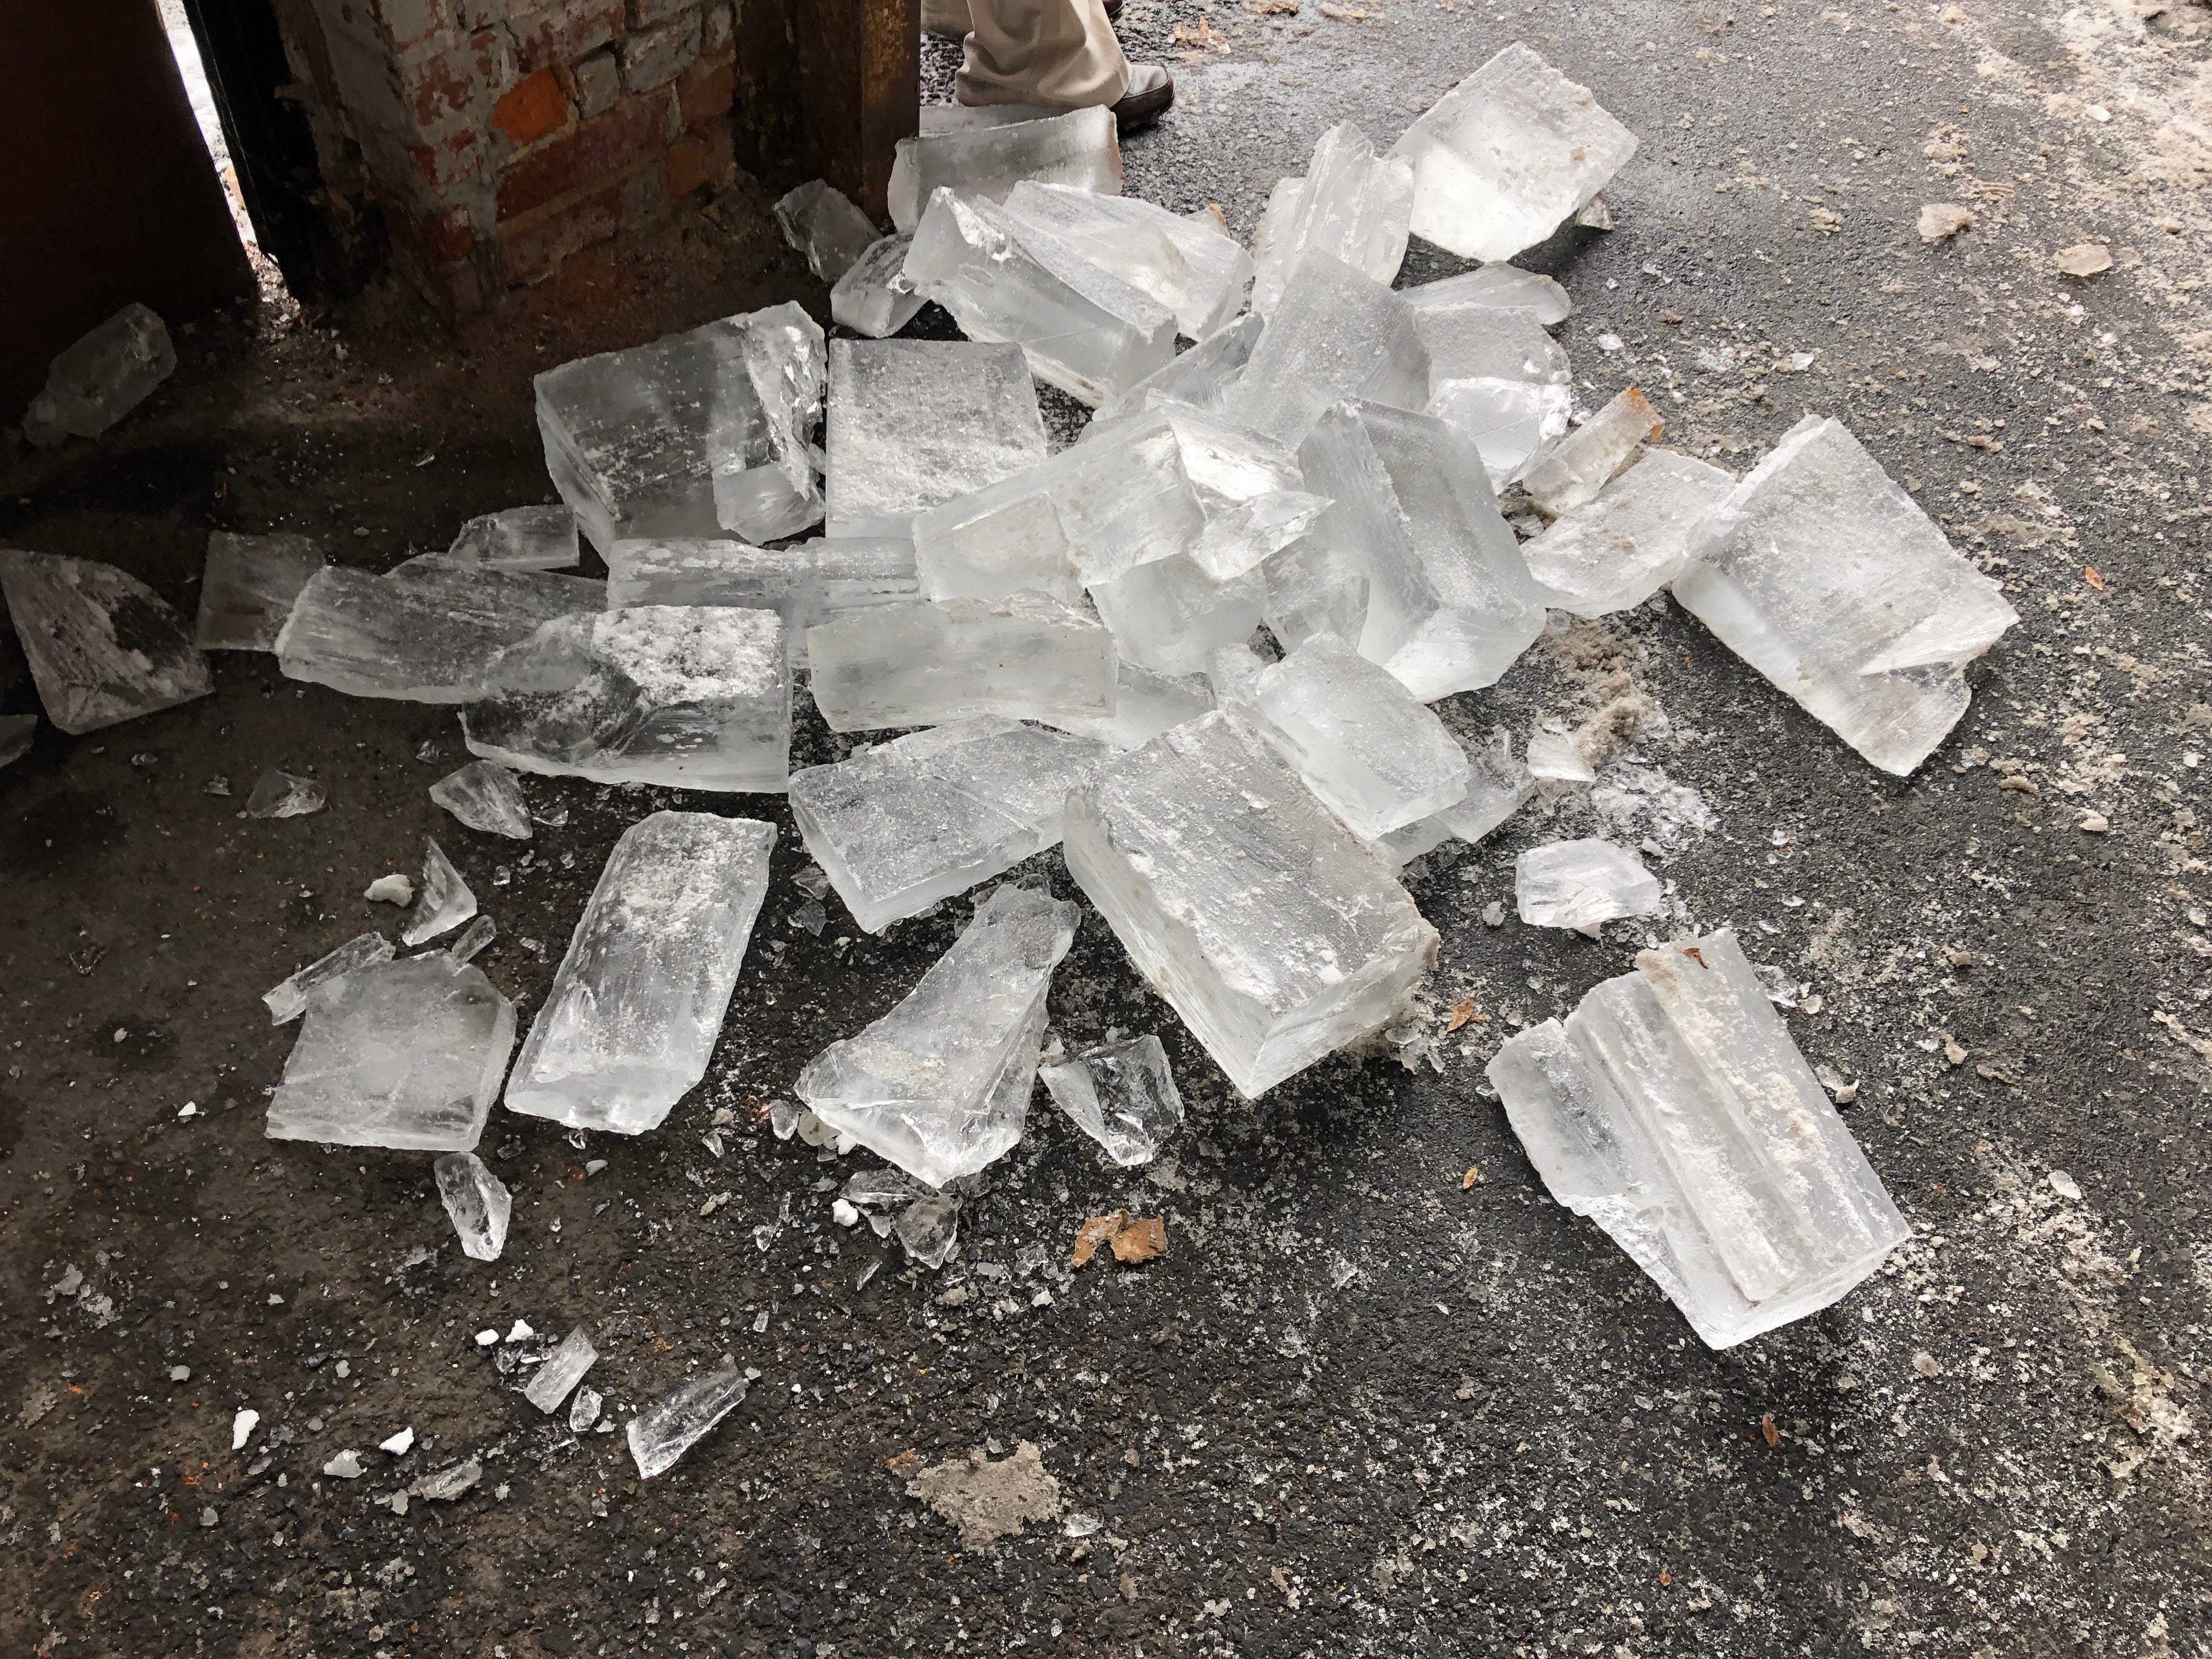 A pile of discarded ice, one of several on the found in the garage at Scott Church Studios when the carving is complete.